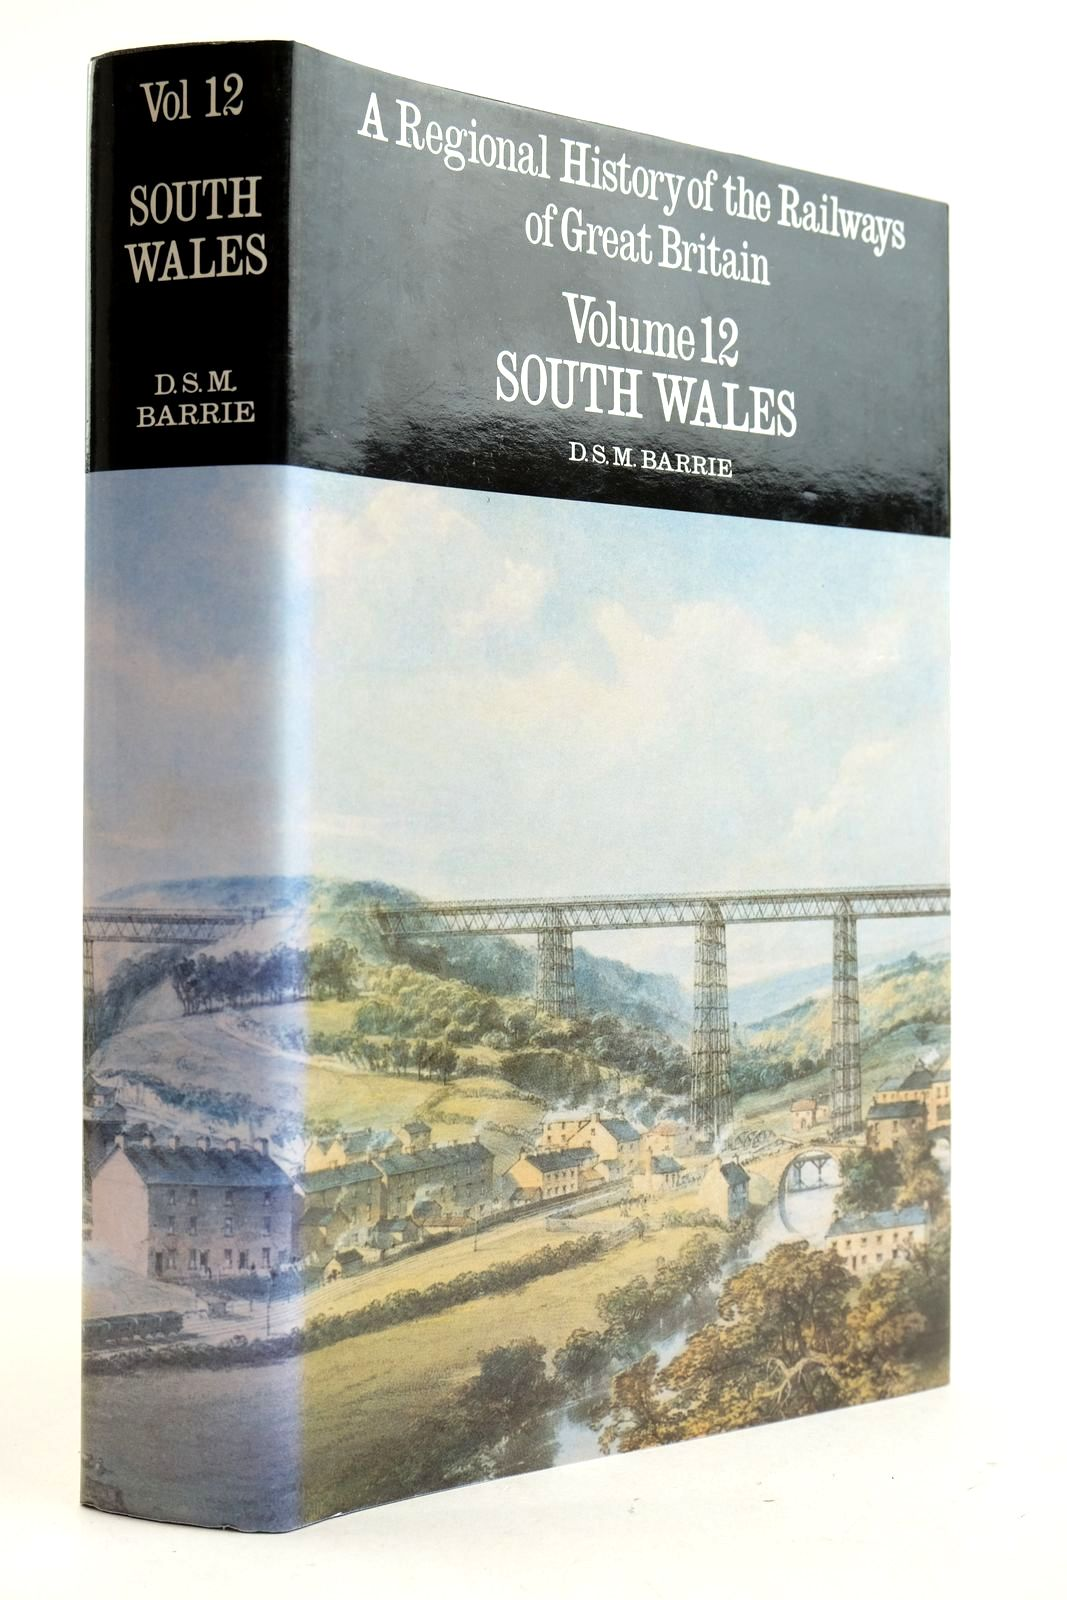 Photo of A REGIONAL HISTORY OF THE RAILWAYS OF GREAT BRITAIN VOLUME 12 SOUTH WALES written by Barrie, D.S.M. published by David St John Thomas (STOCK CODE: 2133046)  for sale by Stella & Rose's Books